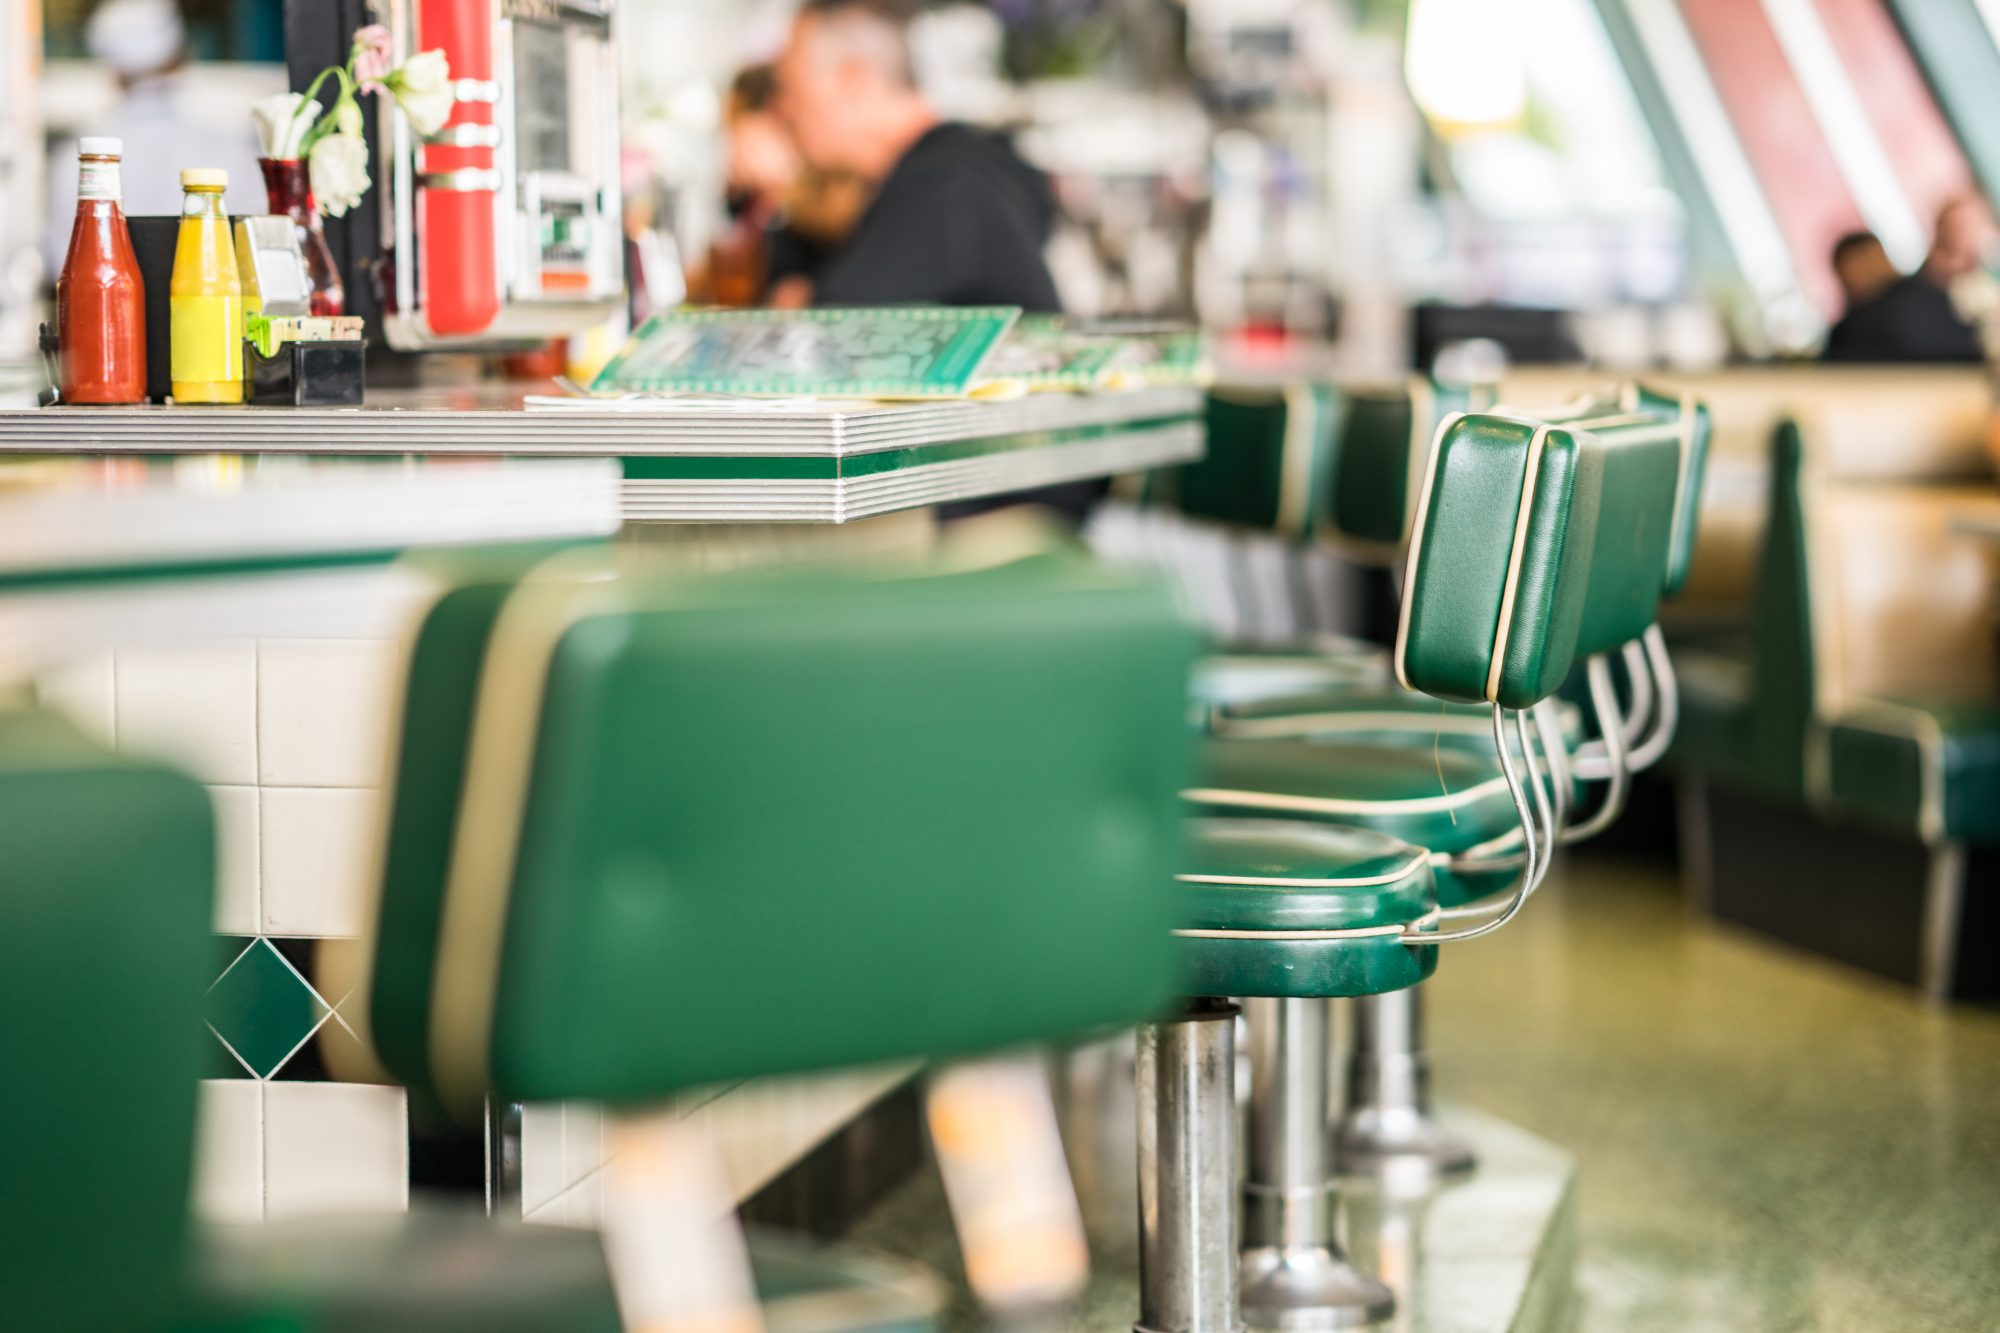 Vintage padded bar stools in an American diner restaurant.